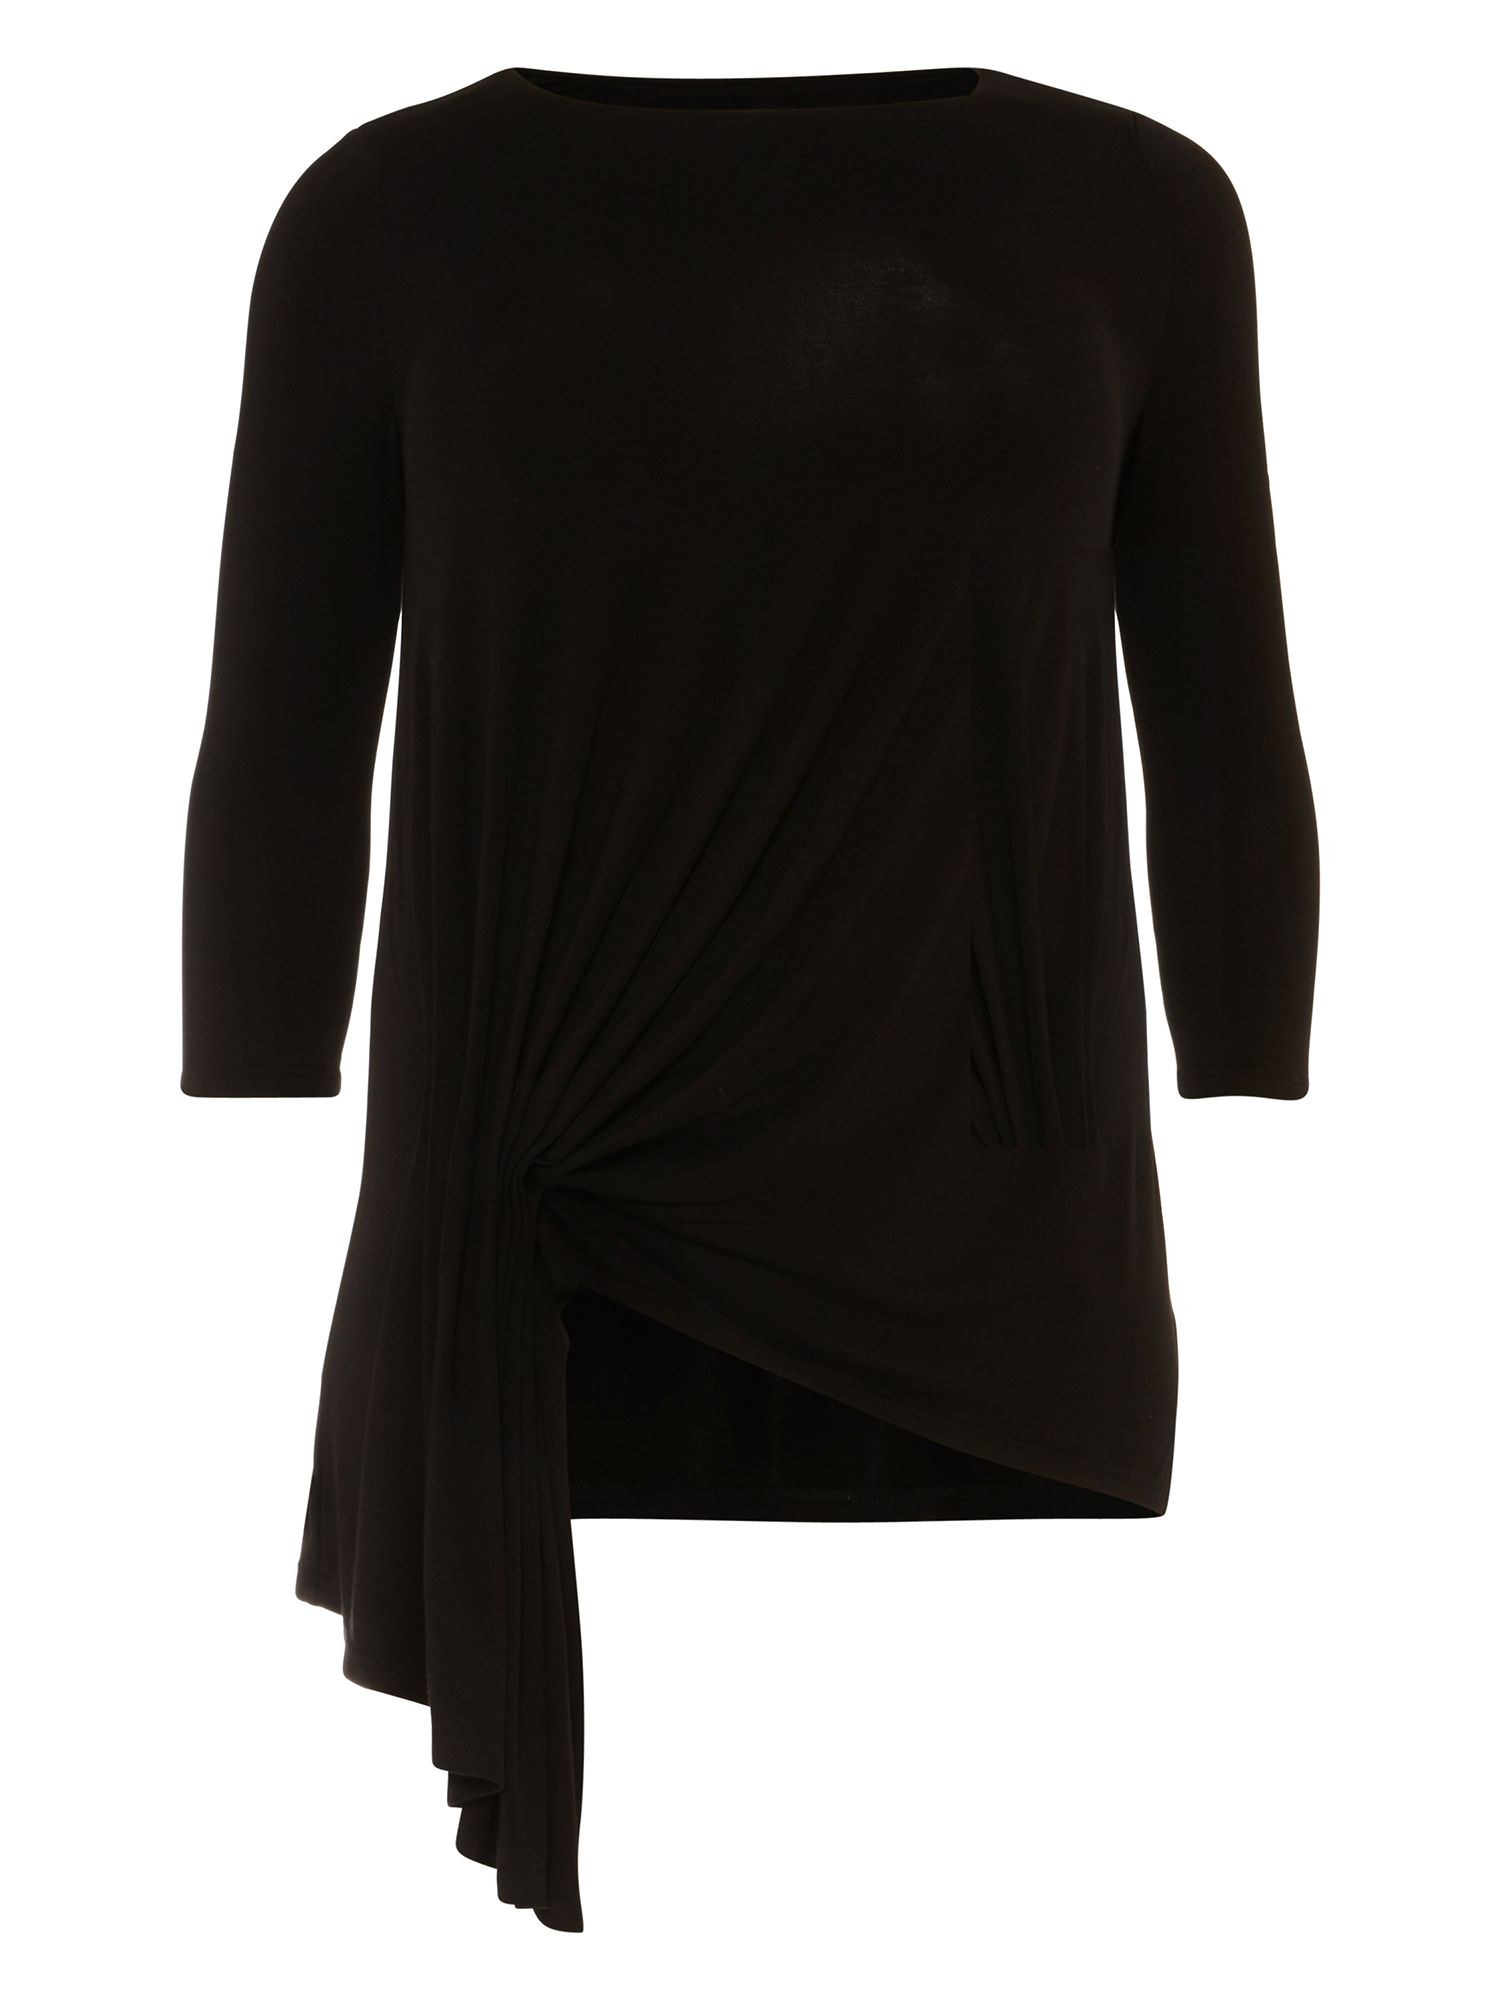 Studio 8 Coralie Top, Black